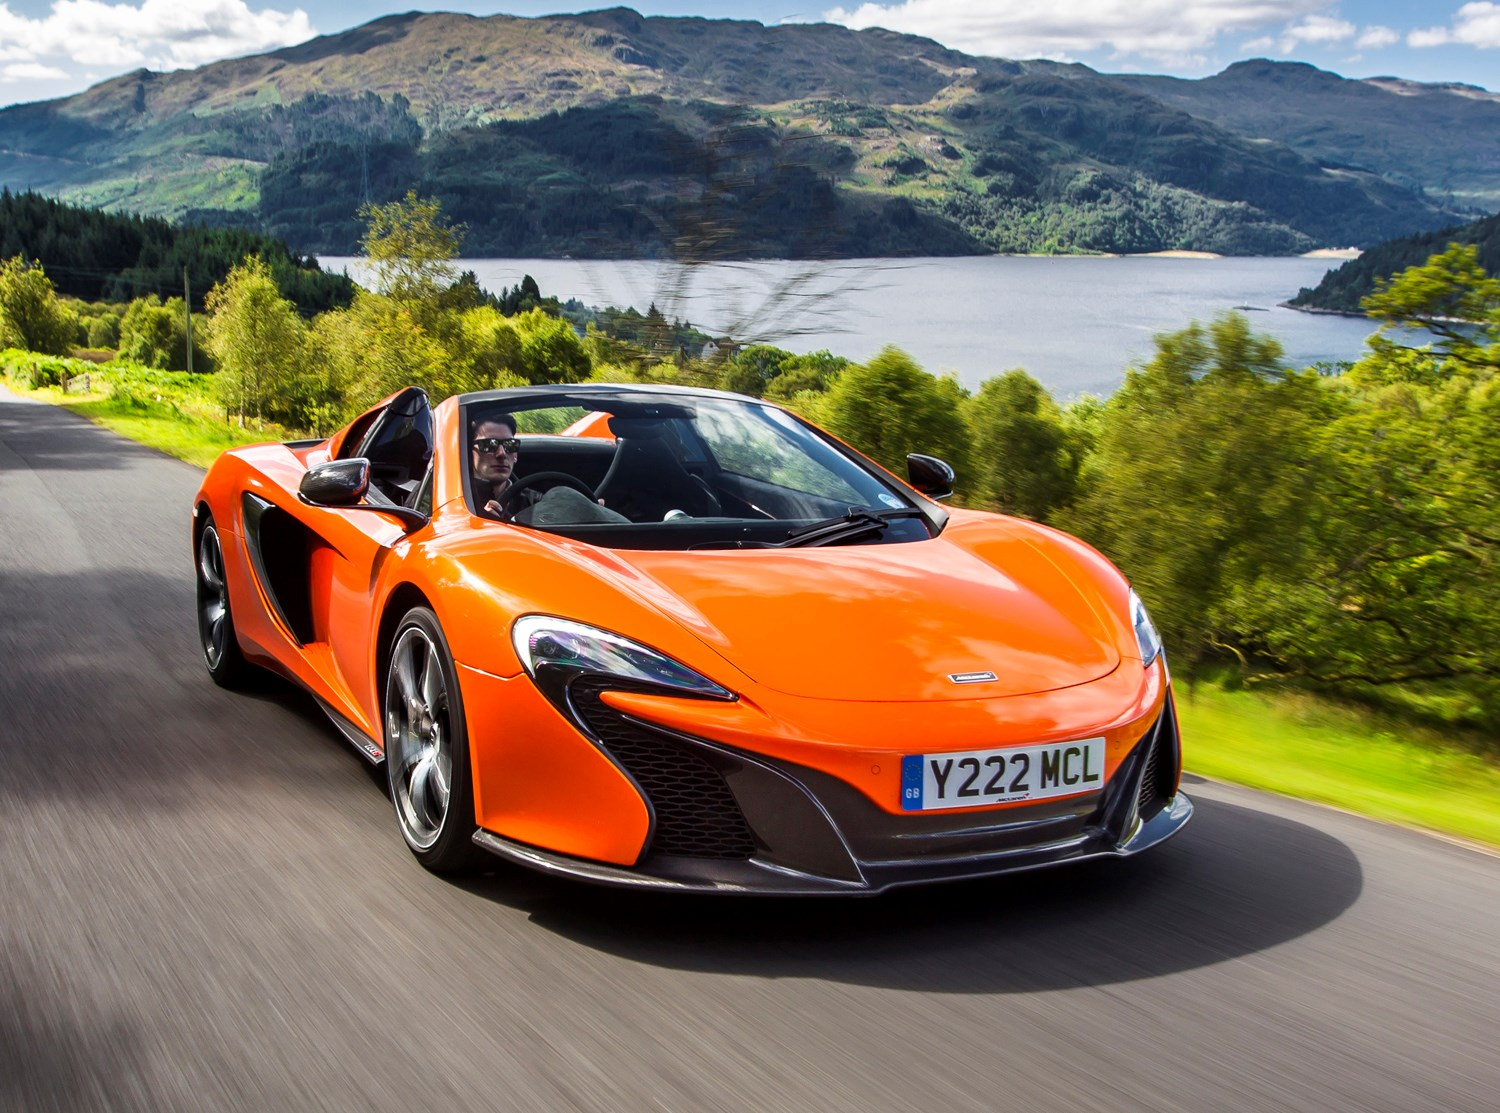 McLaren 650S Spider Convertible Review (2014 - ) | Parkers